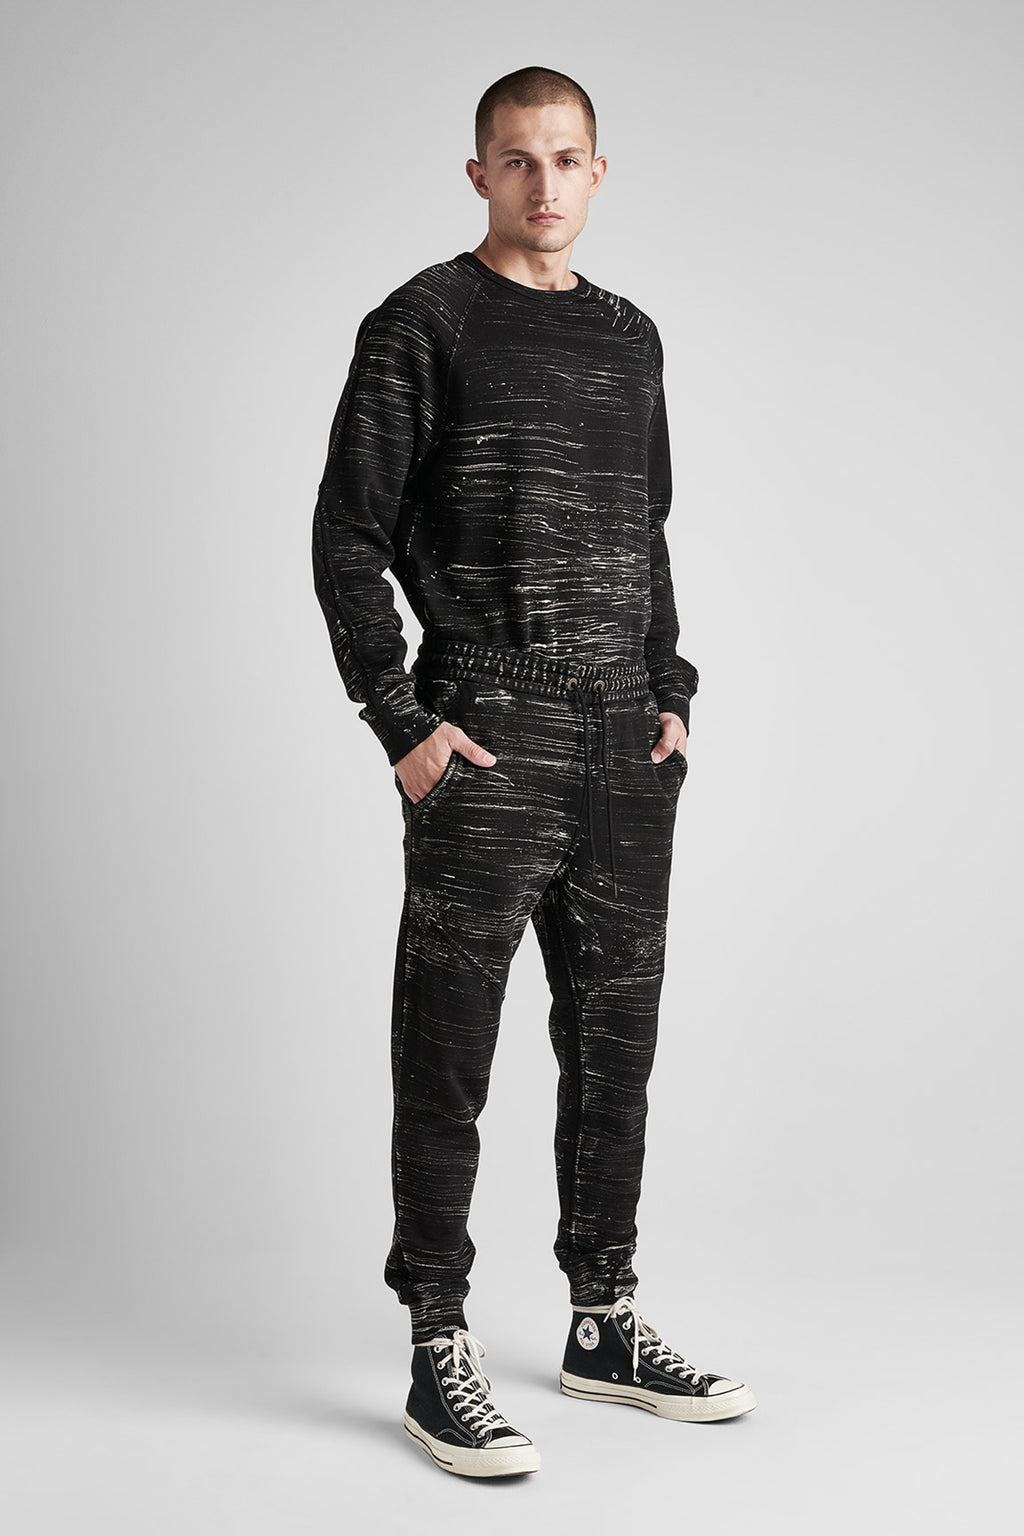 FRENCH TERRY JOGGER - BLACK MARBLE - Image 2